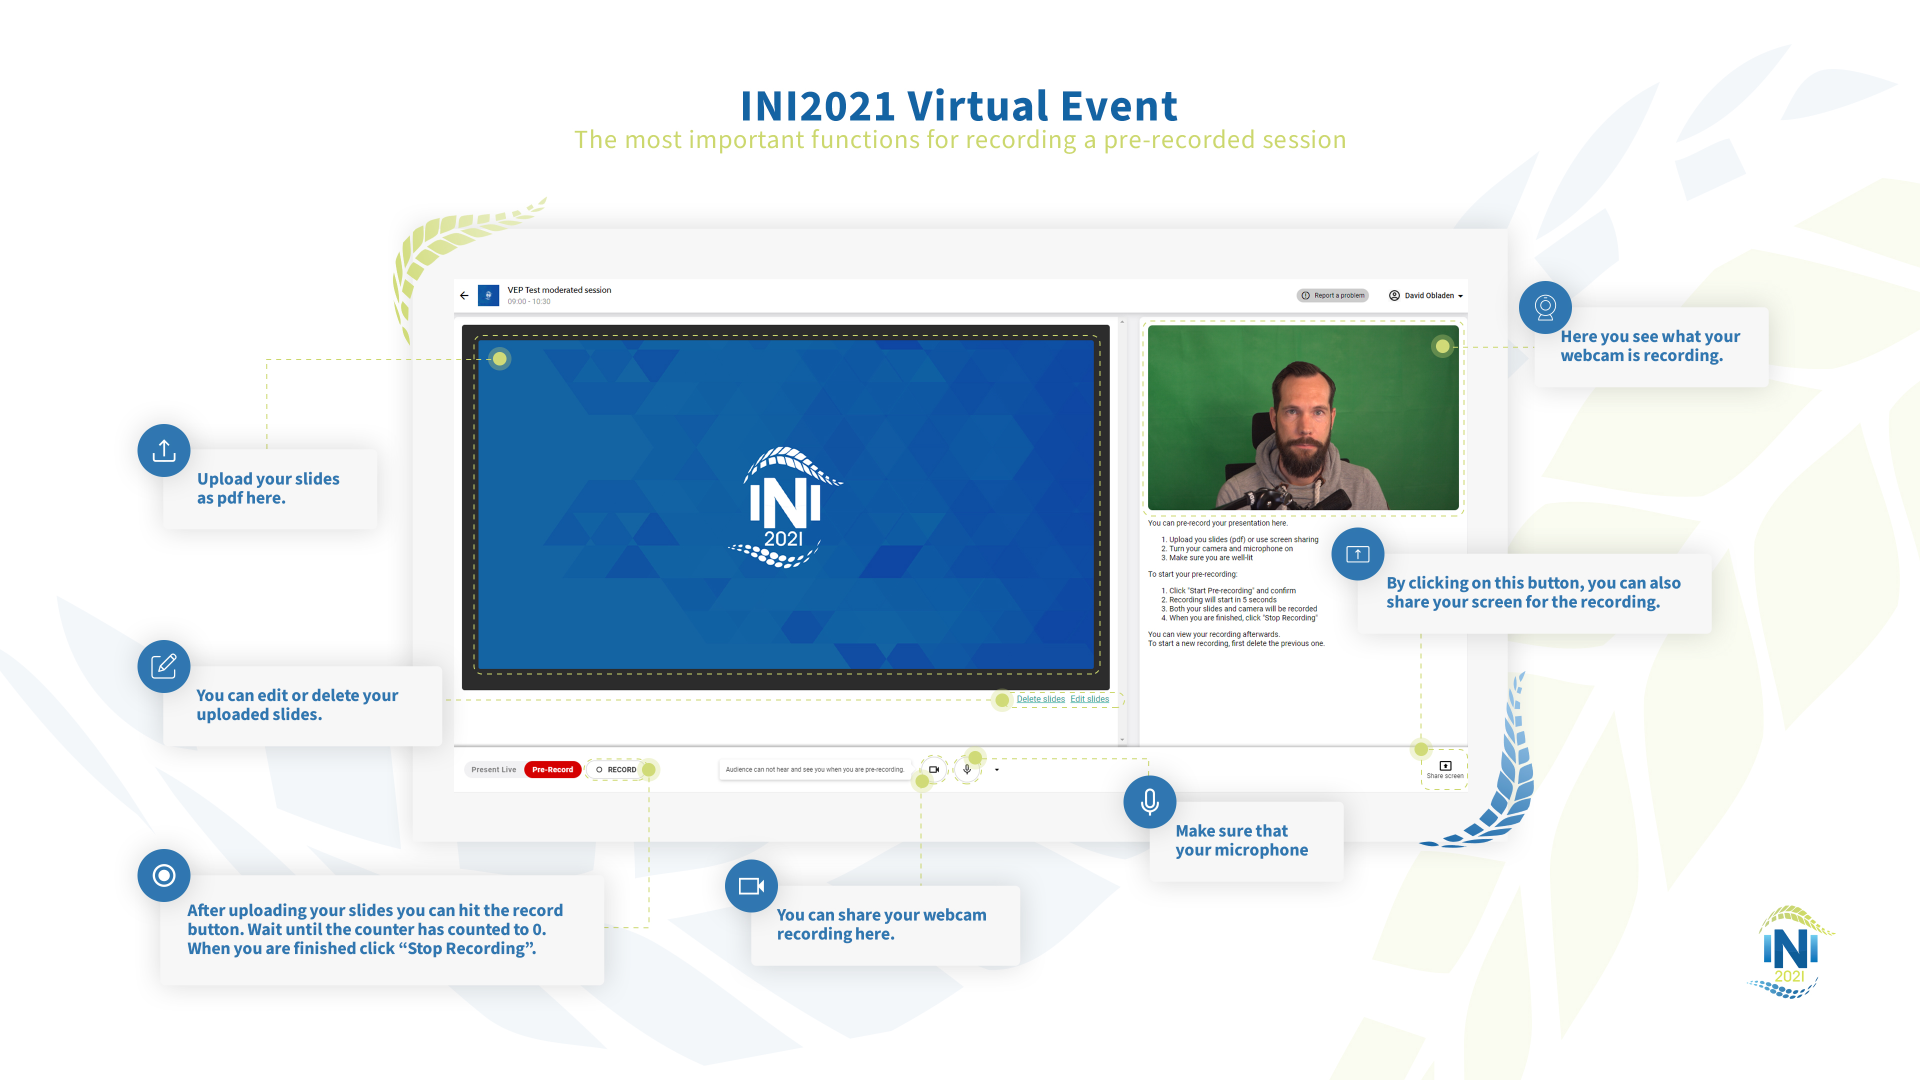 INI2021 Virtual Event How To Pre-Recorded Session Graphic